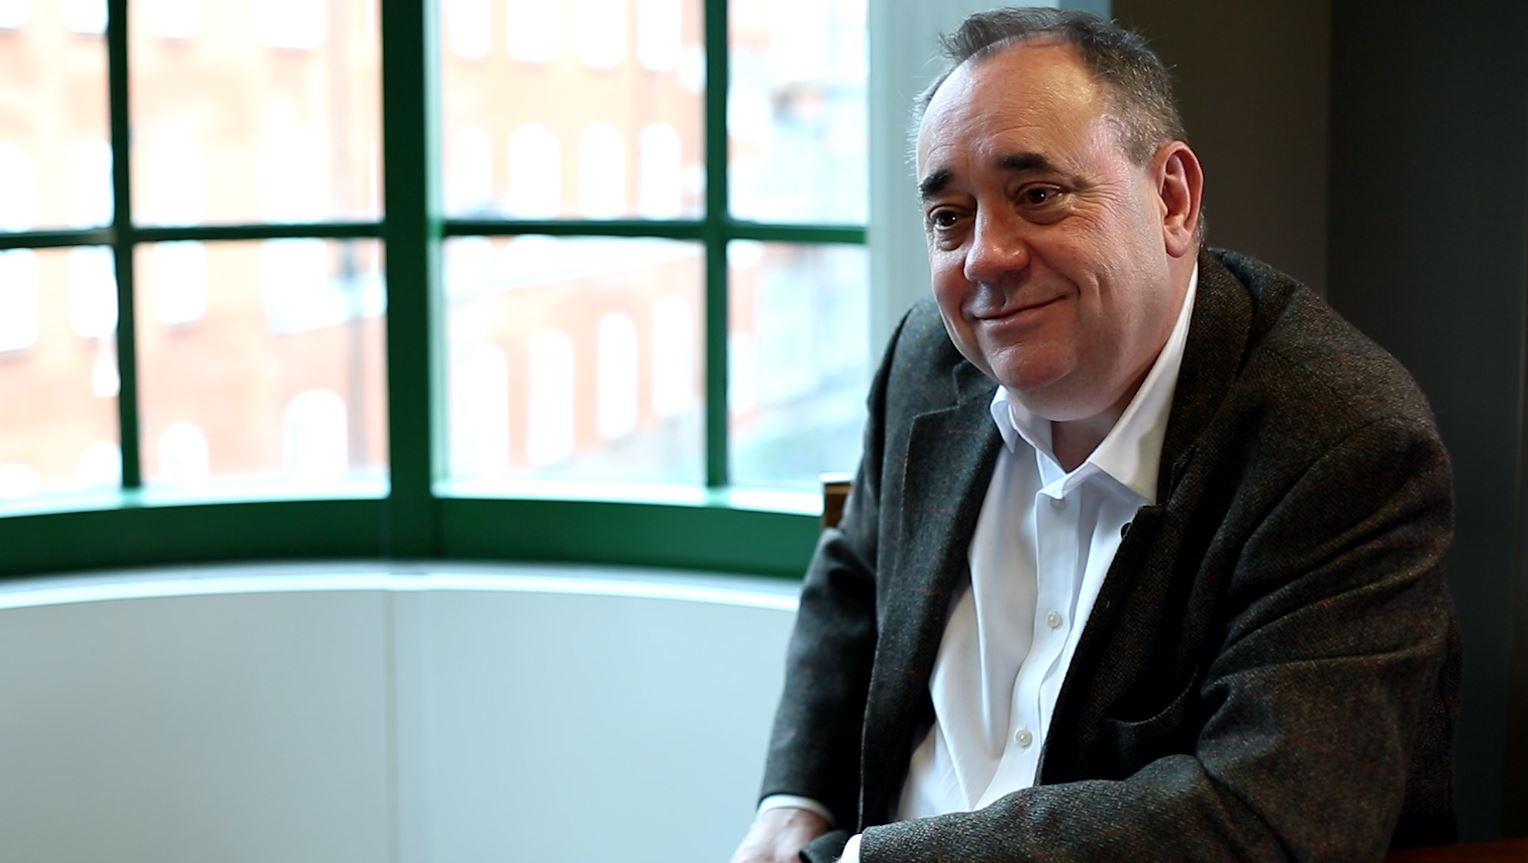 Alex Salmond interview: General election TV debates, Rupert Murdoch and the media